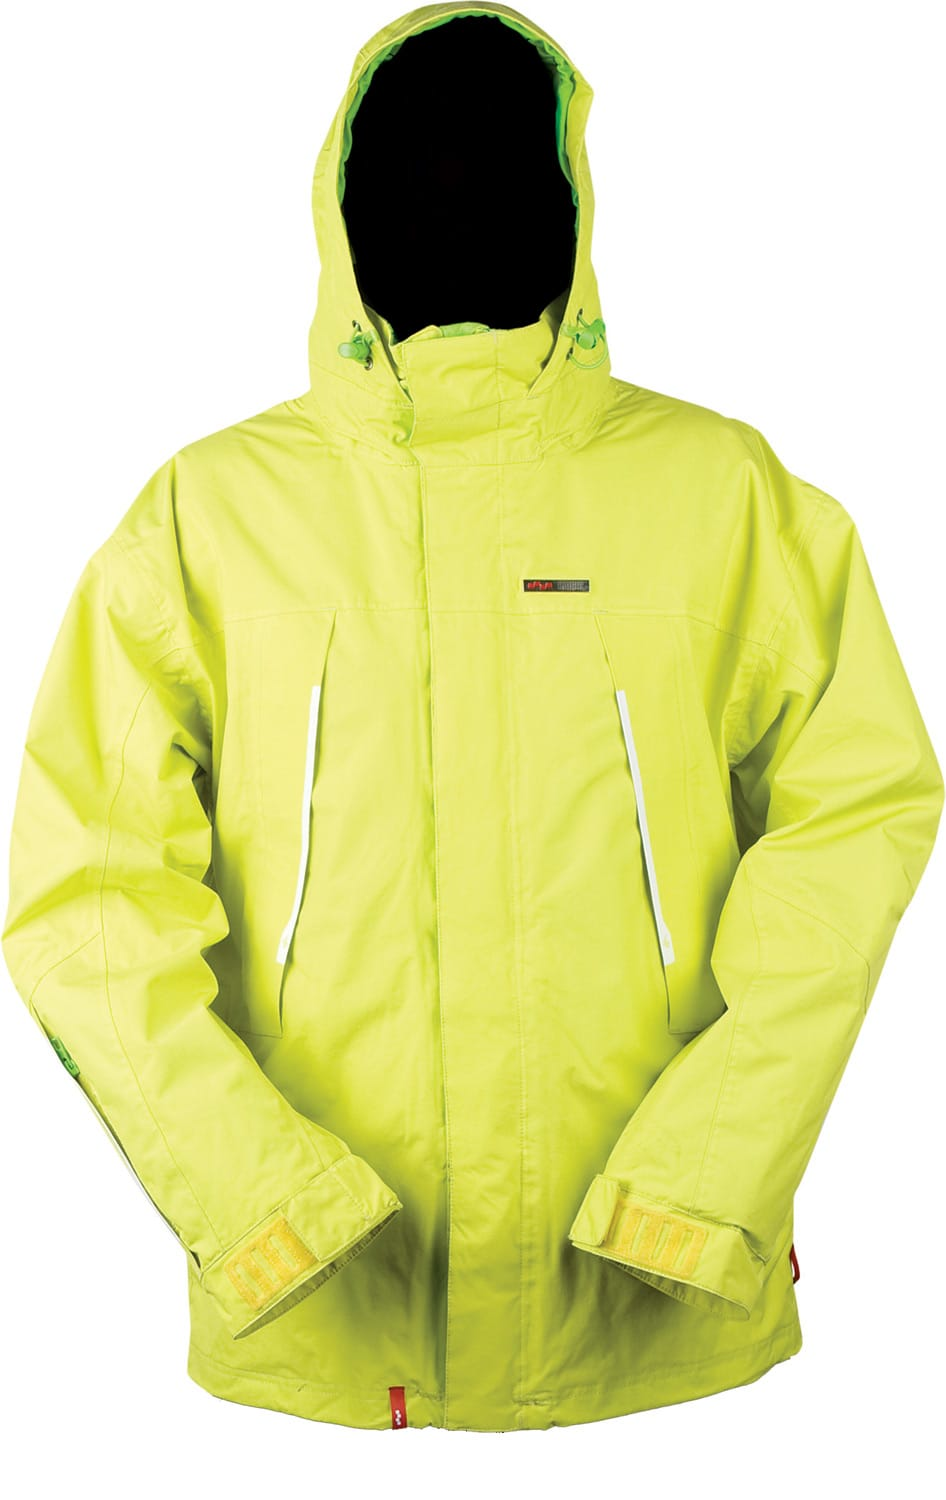 Shop for Foursquare Melnik Snowboard Jacket Citron - Men's